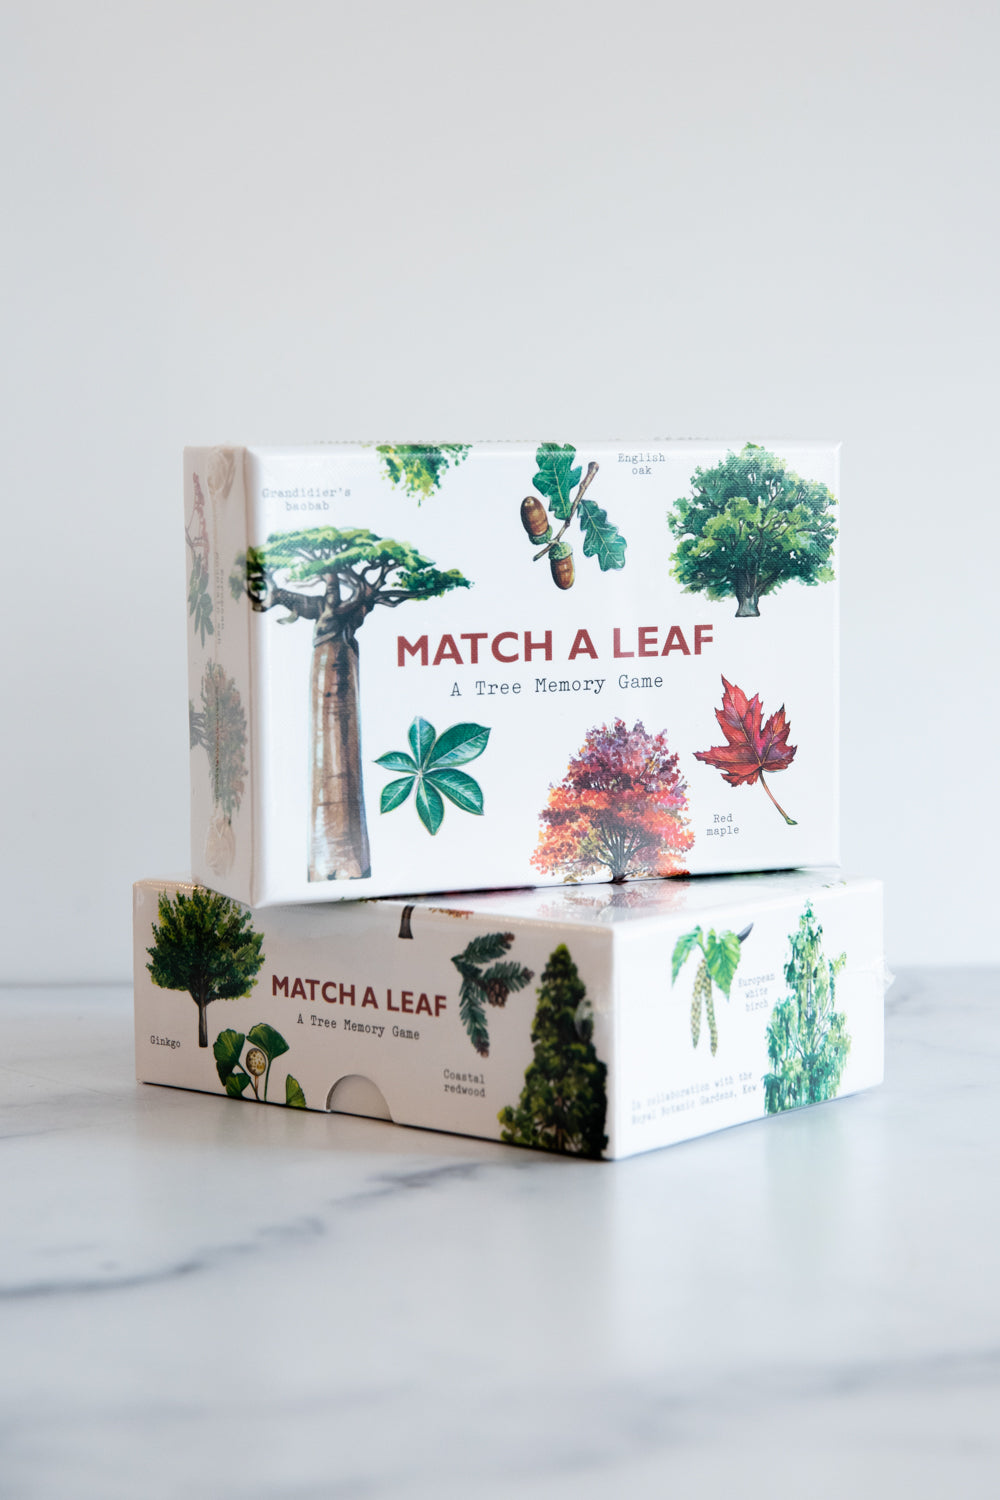 Match a Leaf: A Tree Memory Game